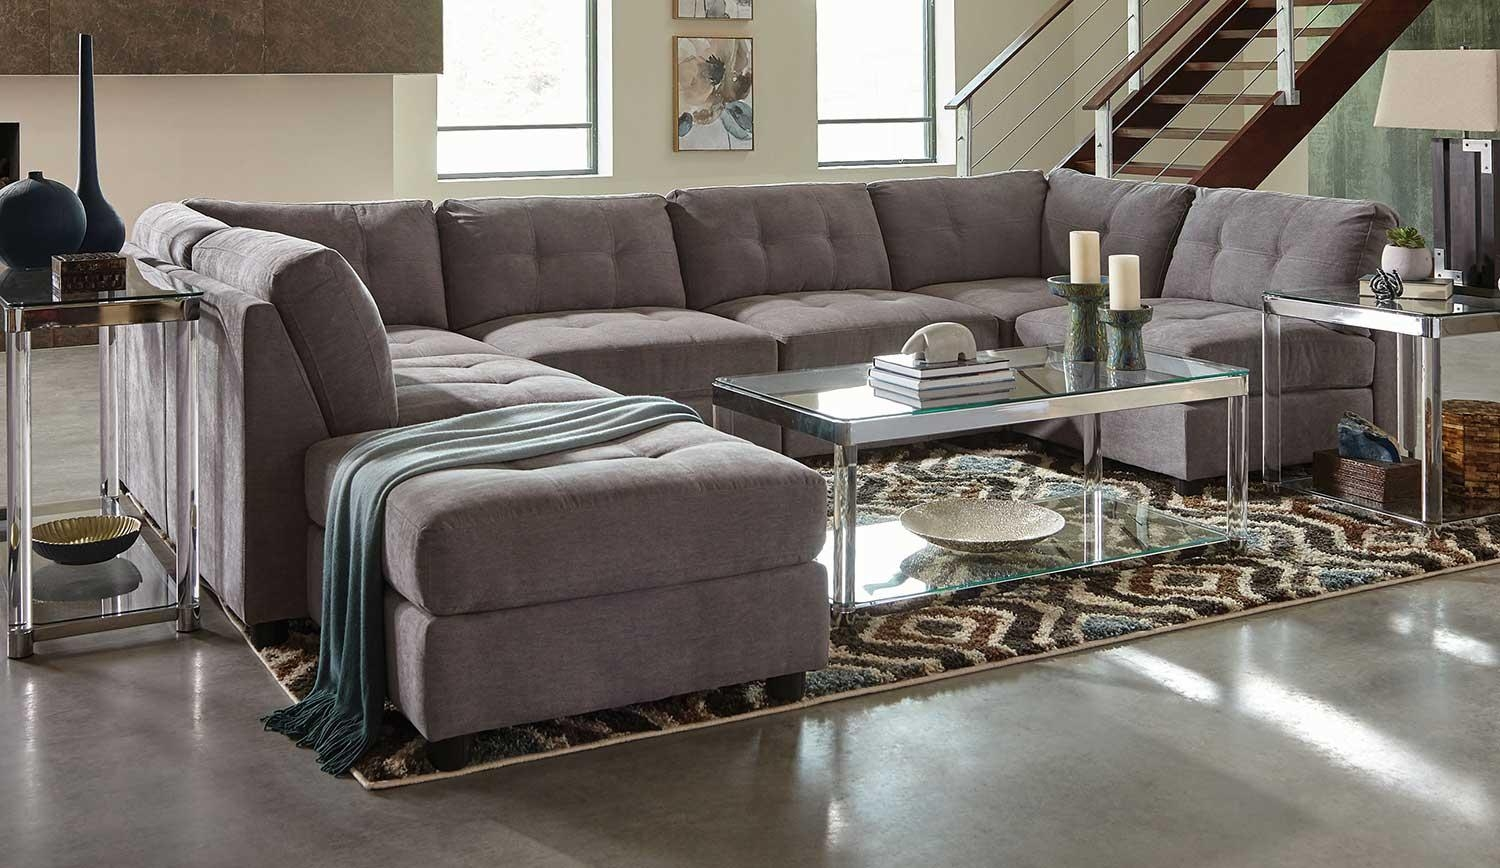 Coaster Claude Sectional Sofa Set – Dove 551004 Sectional Set At Regarding Coaster Sectional Sofas (Image 4 of 20)